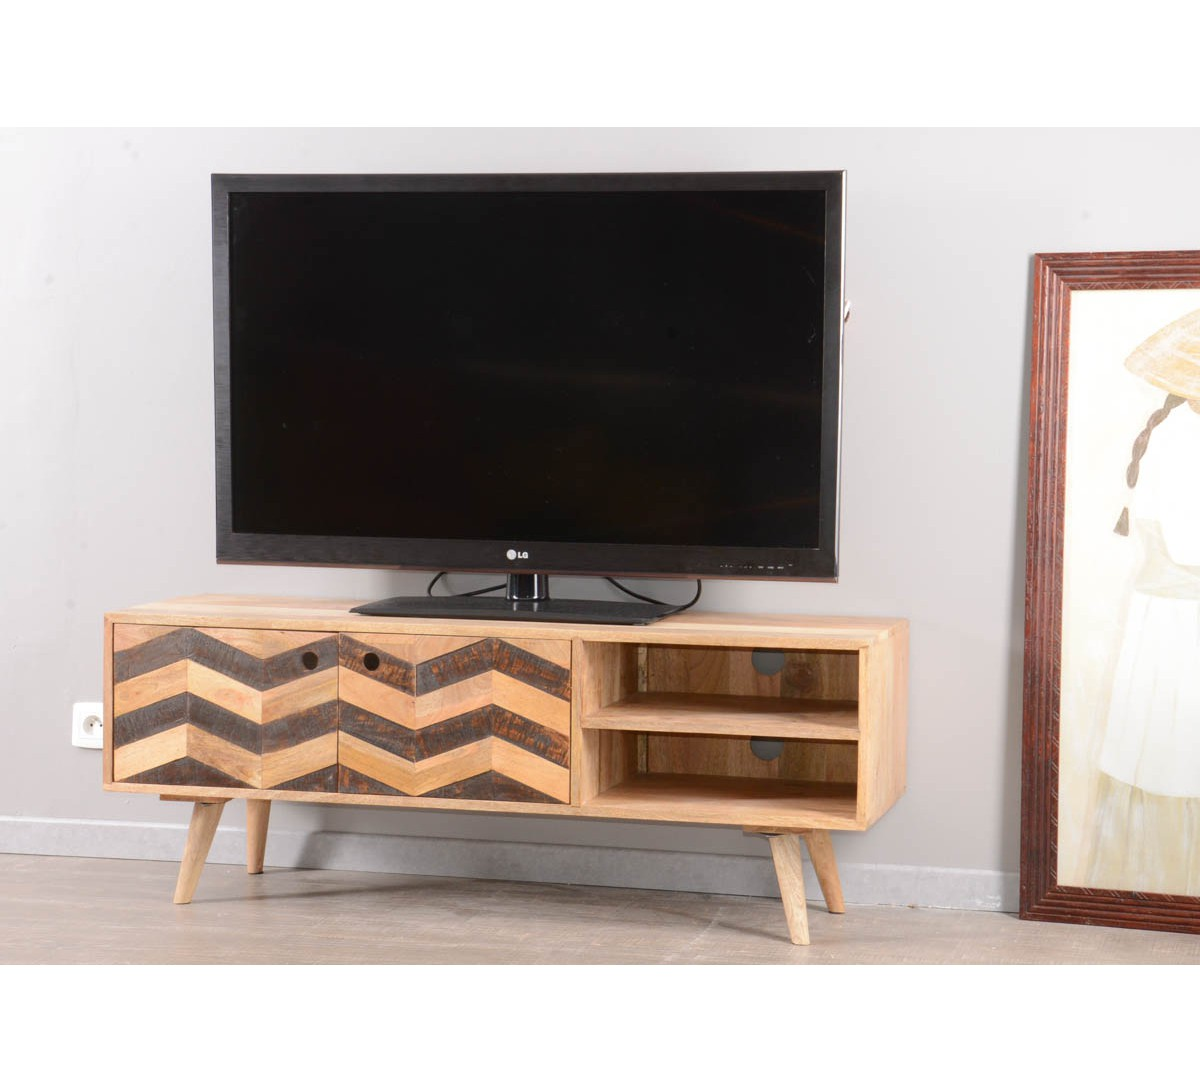 meuble tv 130 cm id es de d coration int rieure french decor. Black Bedroom Furniture Sets. Home Design Ideas